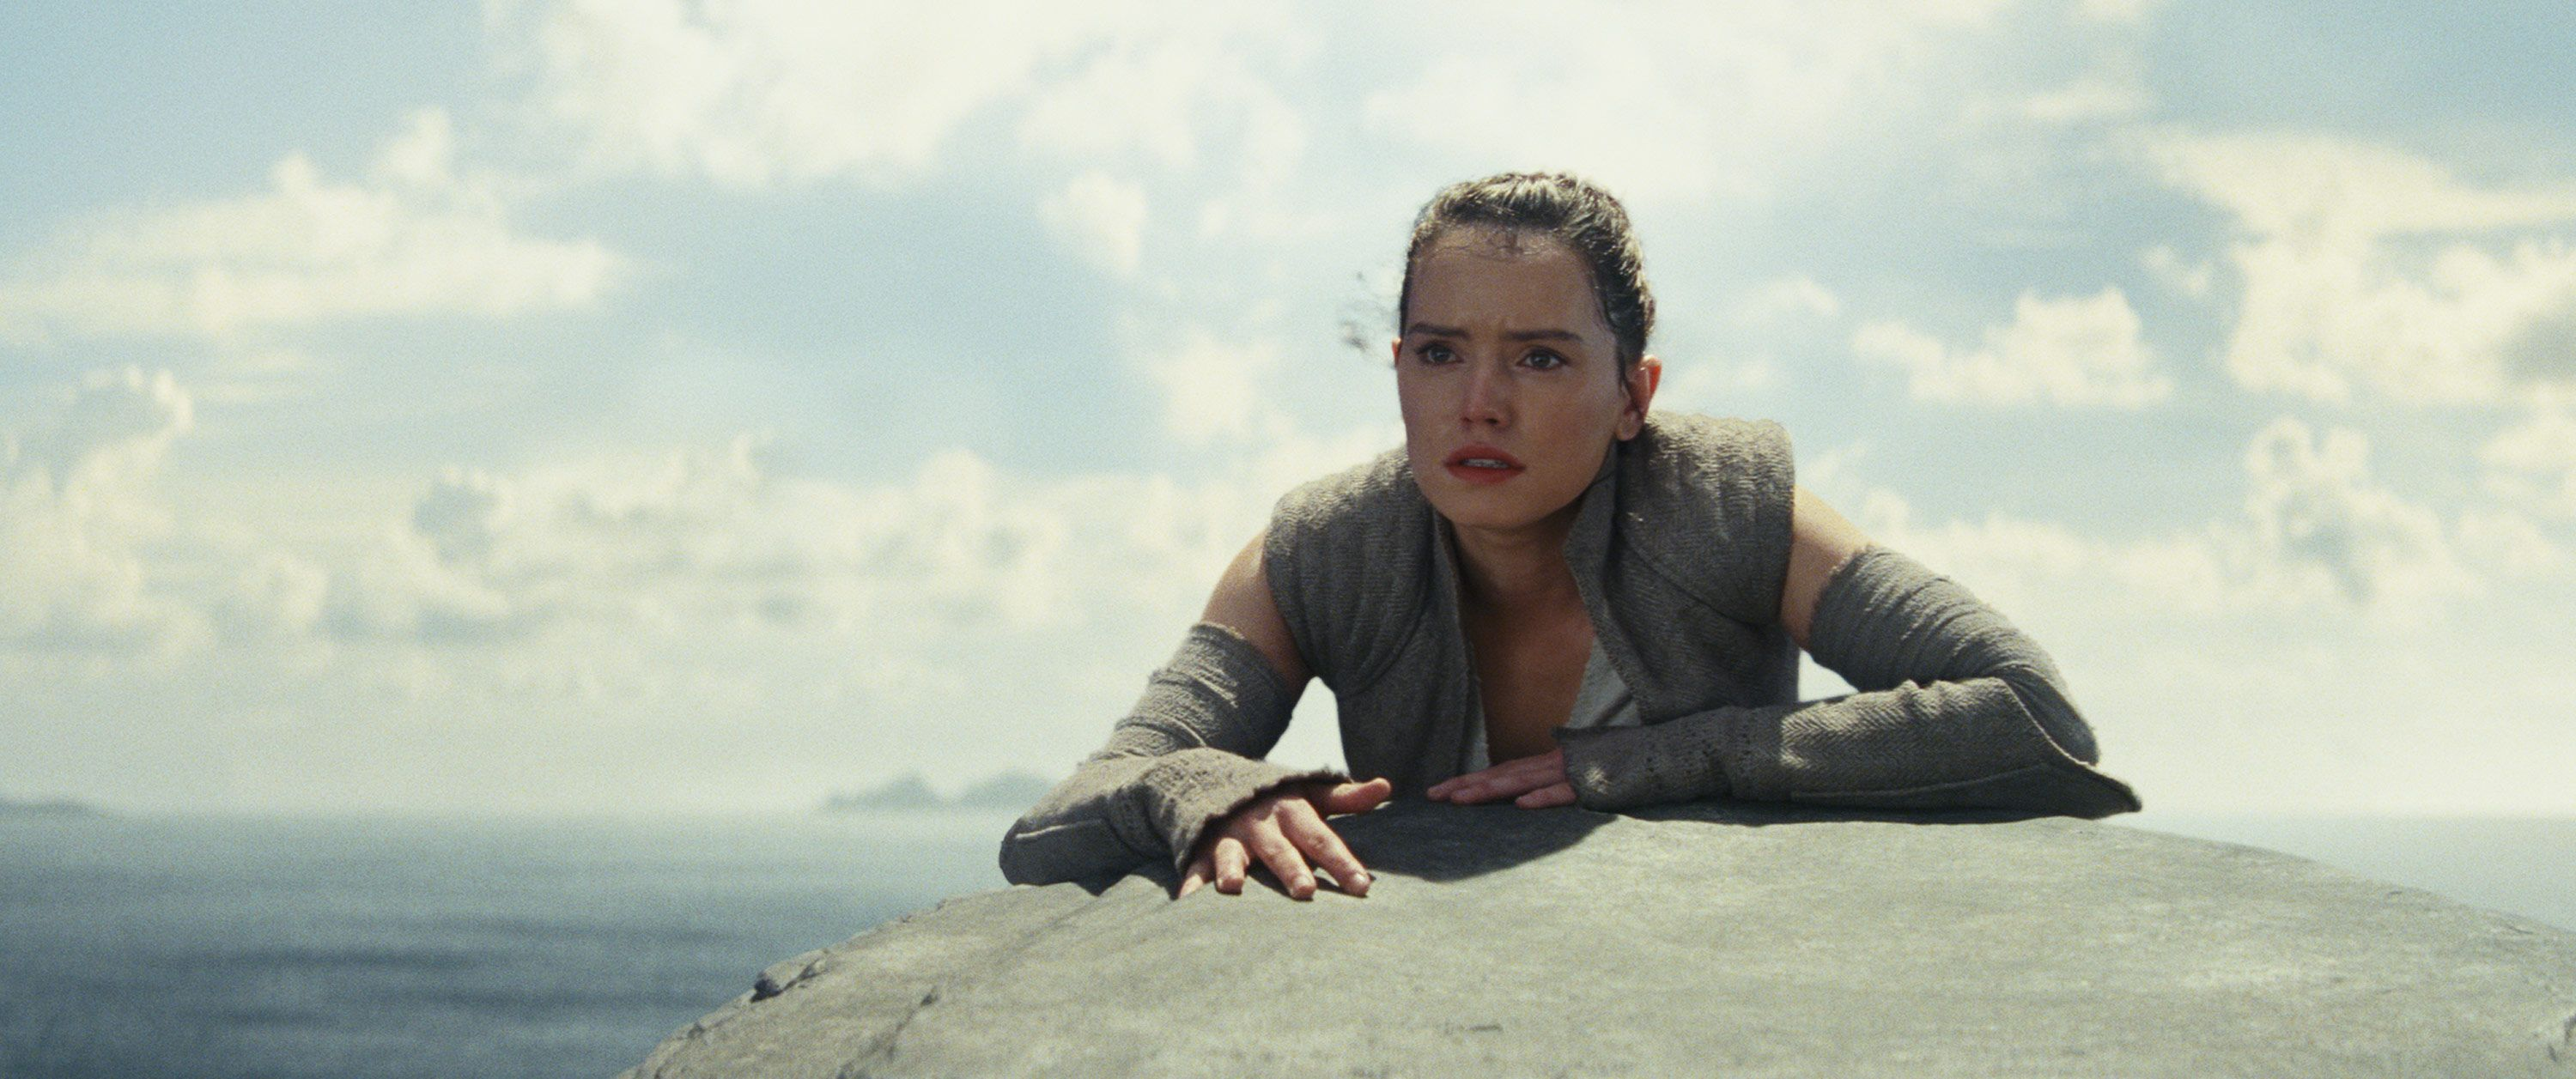 Star Wars: The Force Awakens almost had Marvel star playing Rey